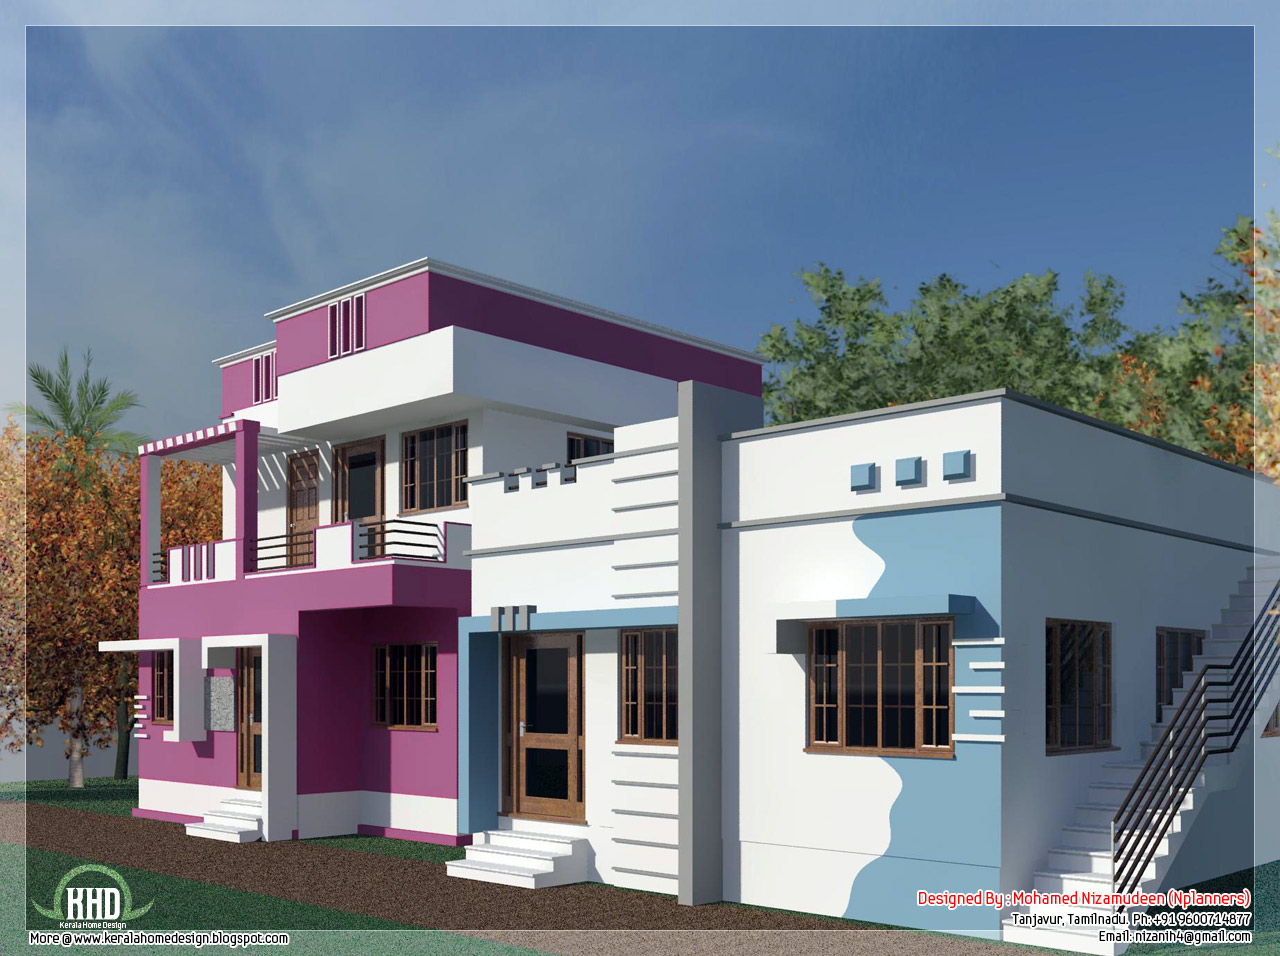 Tamilnadu model home design in 3000 kerala home for House elevation models